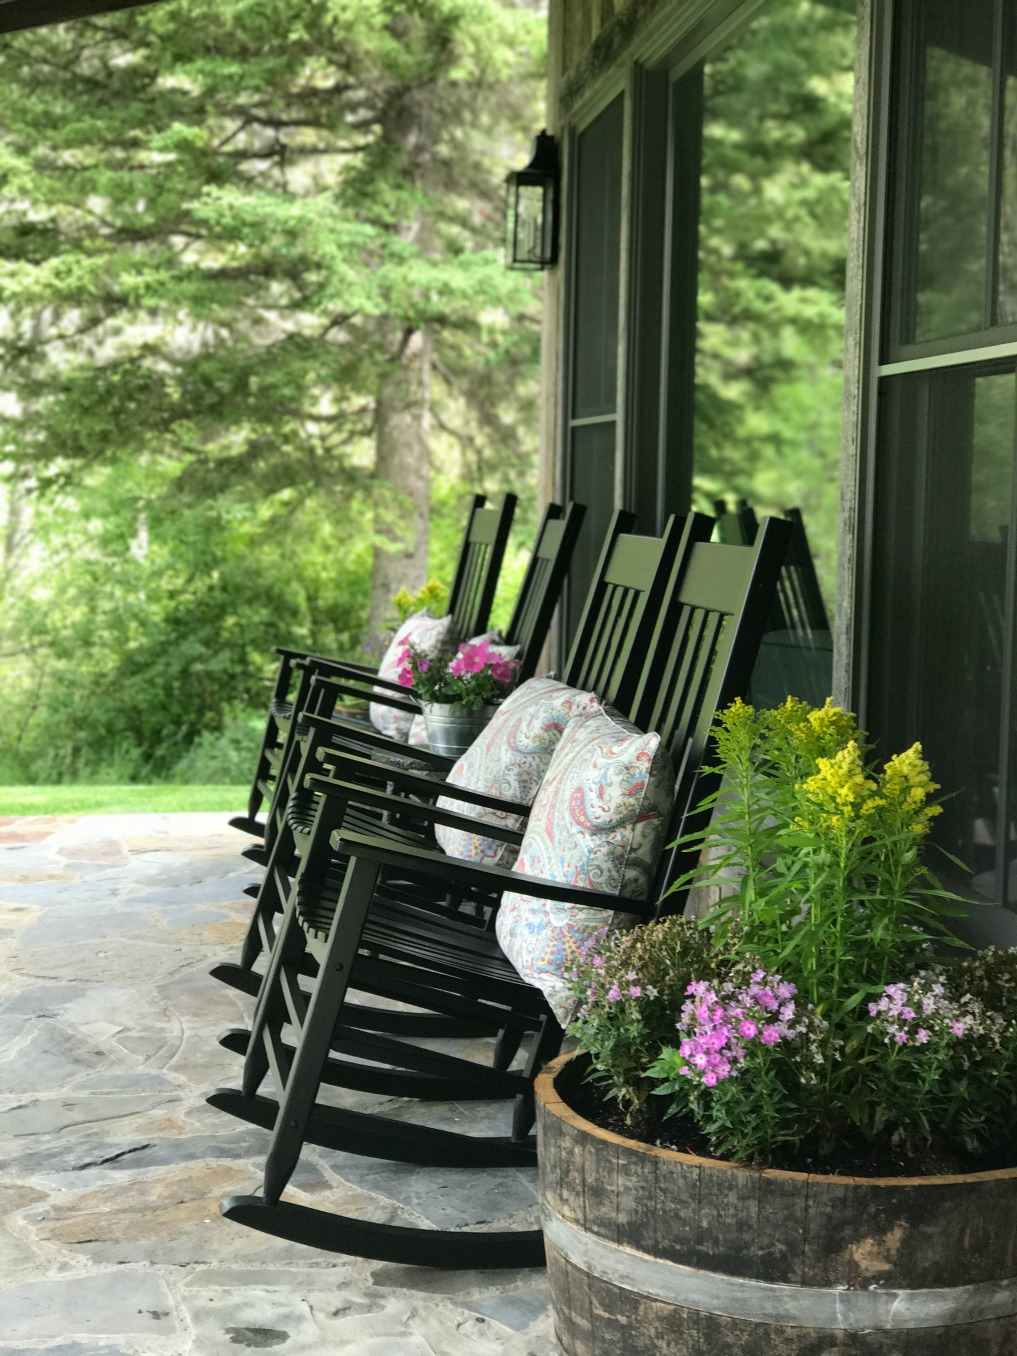 Eclectic Home Tour of Sanctuary Home - welcome to Crow Hollow Ranch. This 500 acre property is complete with farmhouse, guest house and rustic cabin kellyelko.com #hometour #porch #rusticdecor #barnwood #whitekitchen #homedecor